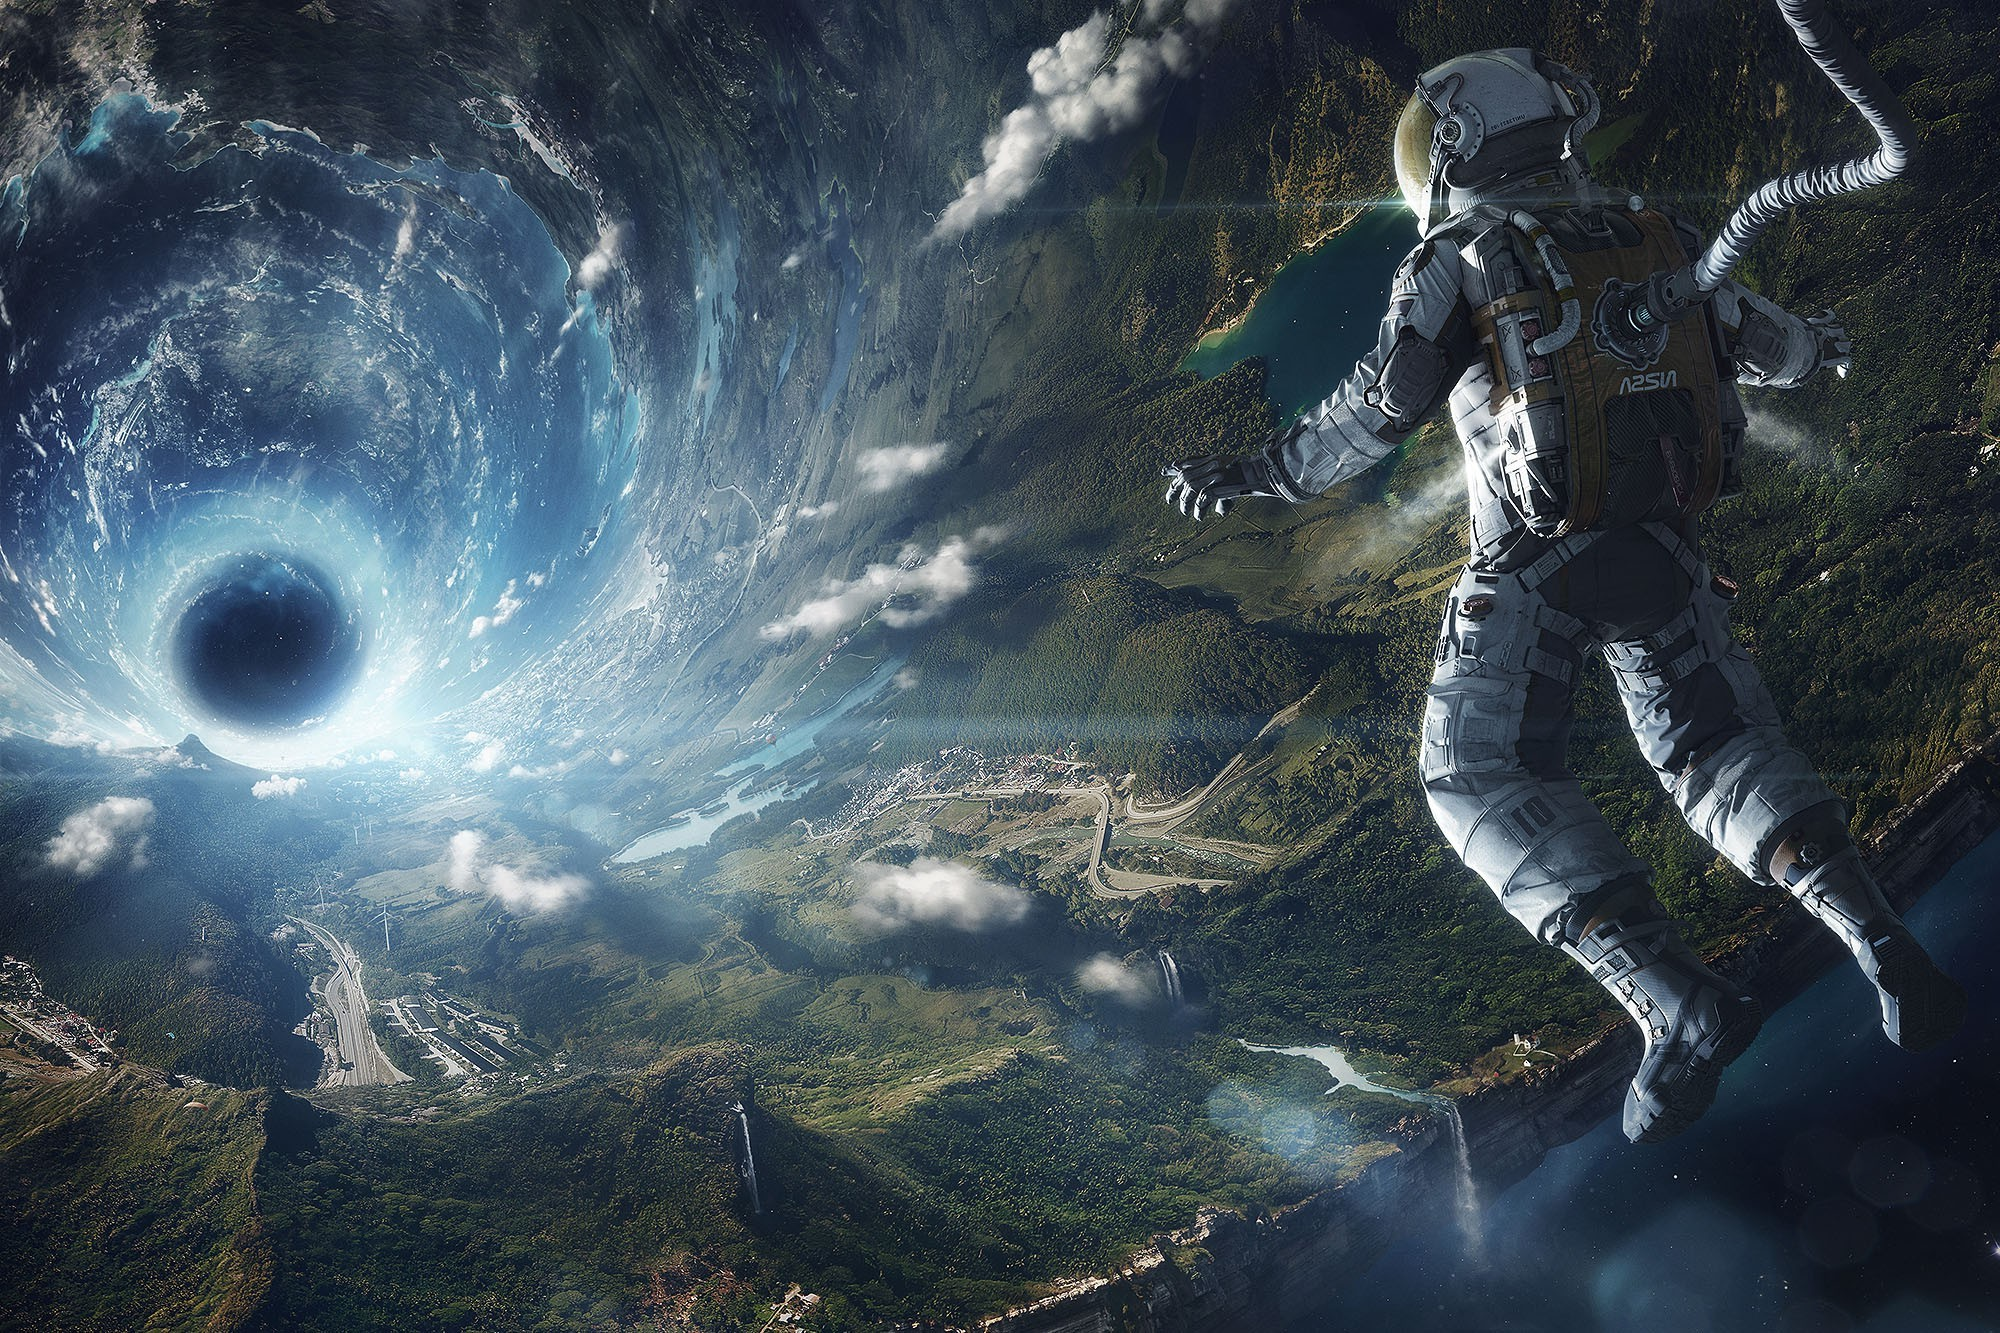 Fantasy space wallpapers 71 images - Black space wallpaper ...